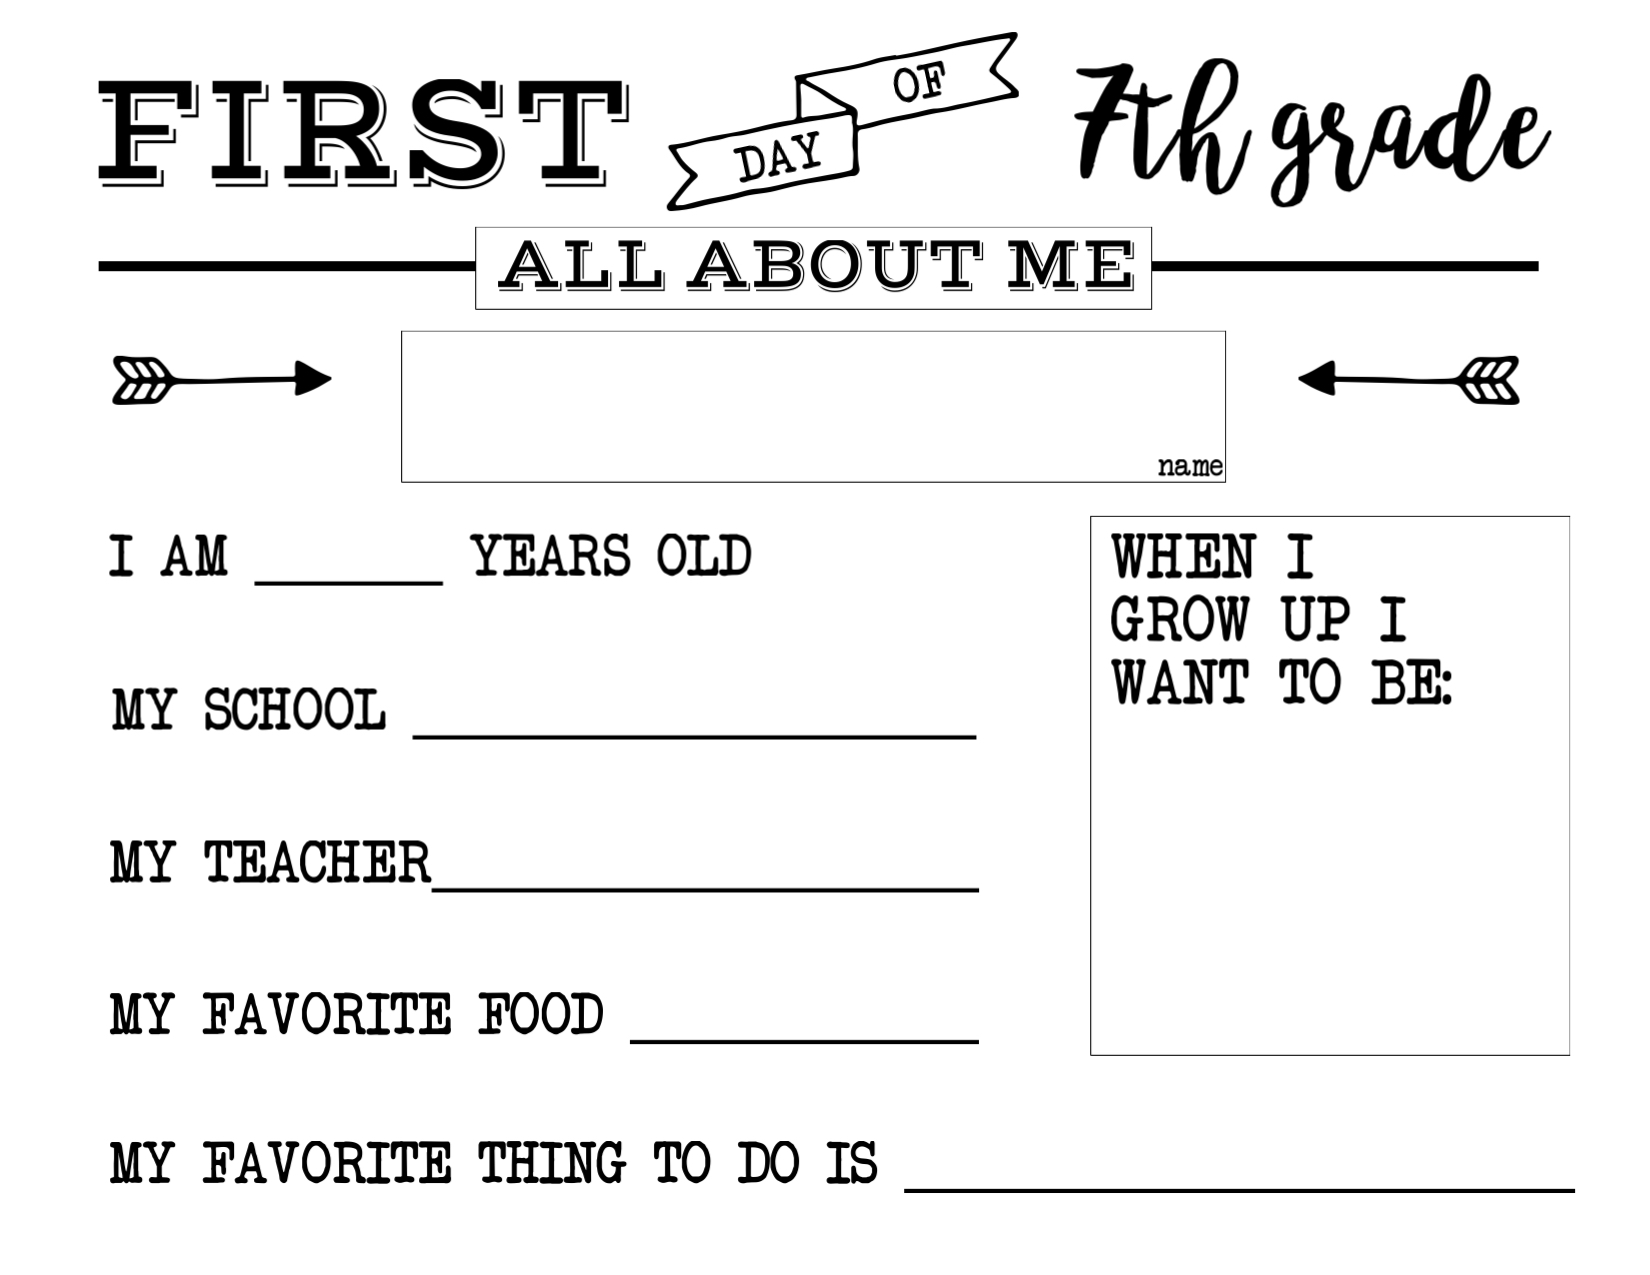 first day of school all about me sign  paper trail design print the  all about me th grade sign  here